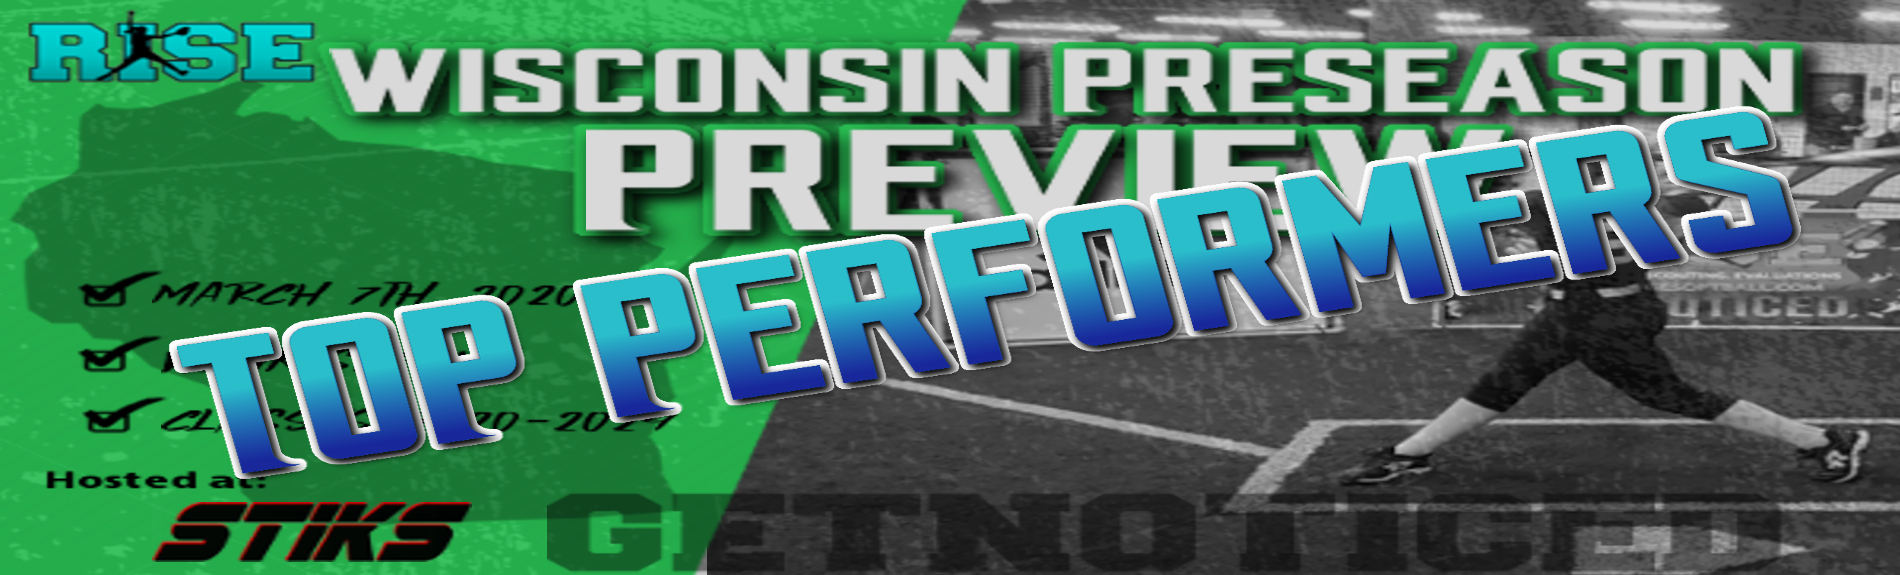 "Wisconsin Preseason Preview ""TOP PERFORMERS"""